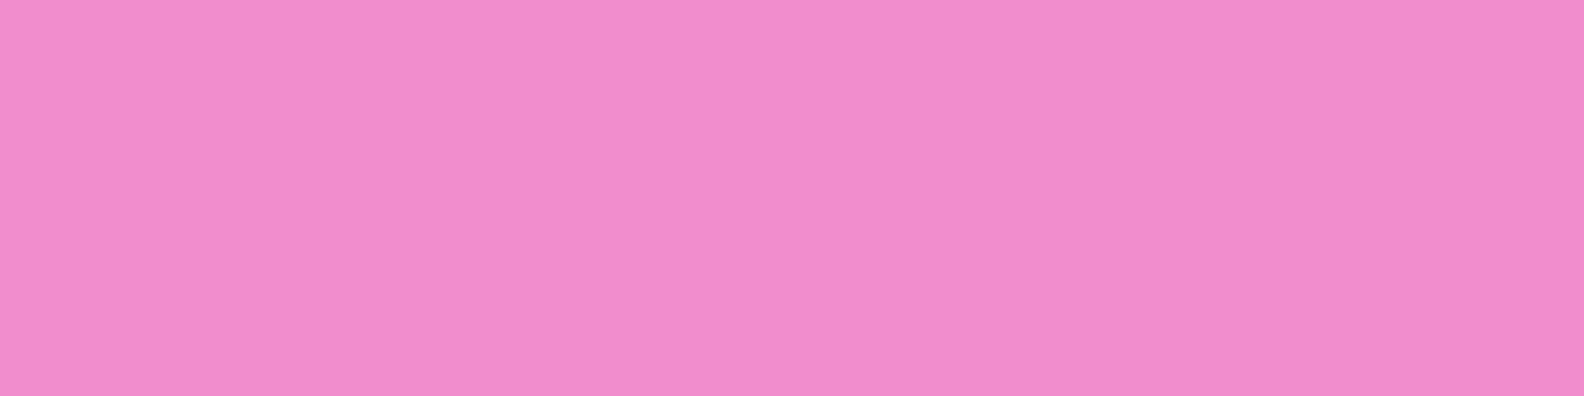 1584x396 Orchid Pink Solid Color Background